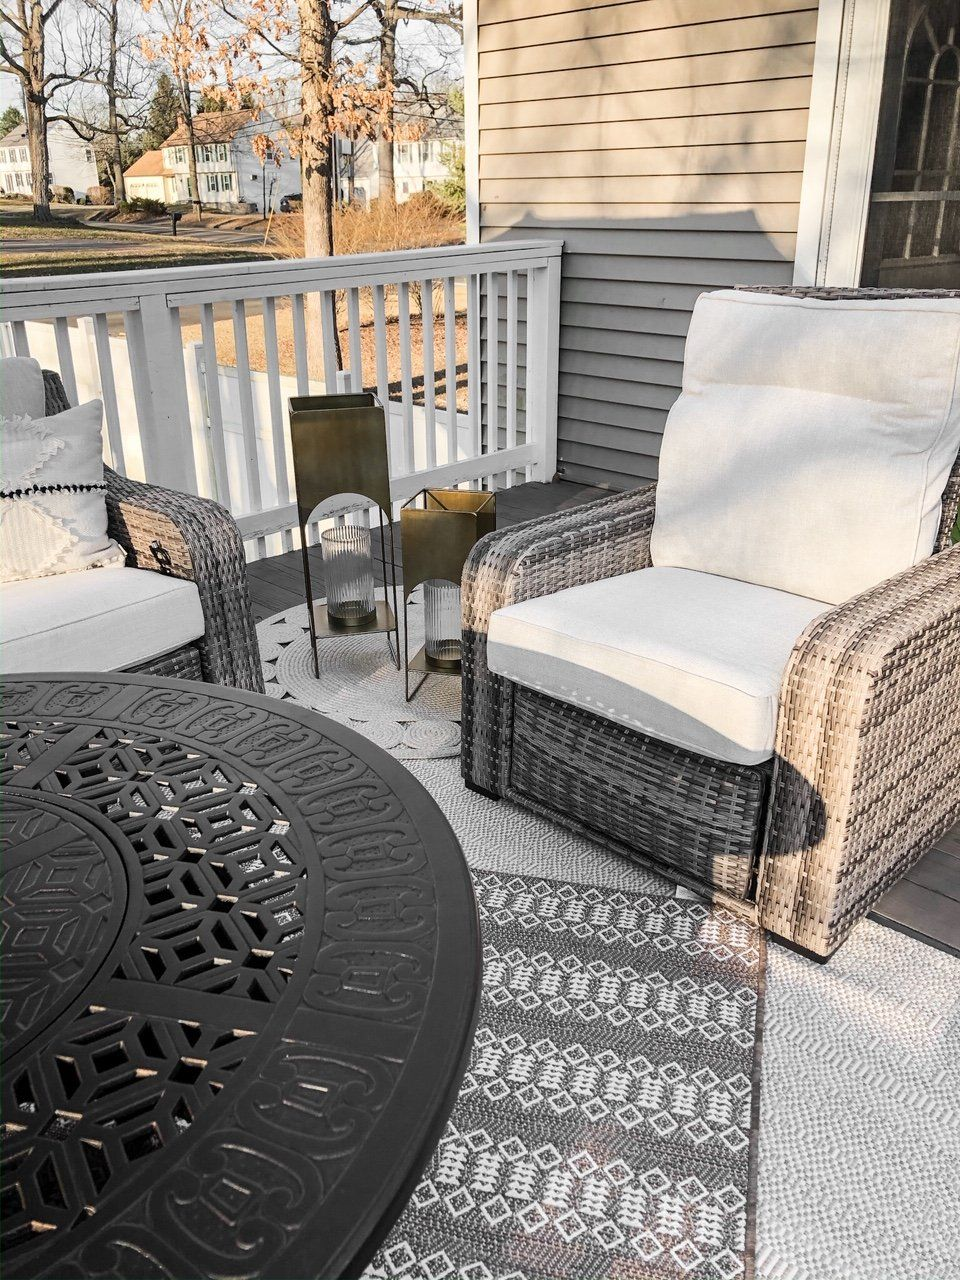 Made With Polyurethane Wicker In A Weather Resistant Finish This Southport Pushback Recliner Sh In 2020 Outdoor Furniture Sets Patio Furniture Sets Mattress Furniture